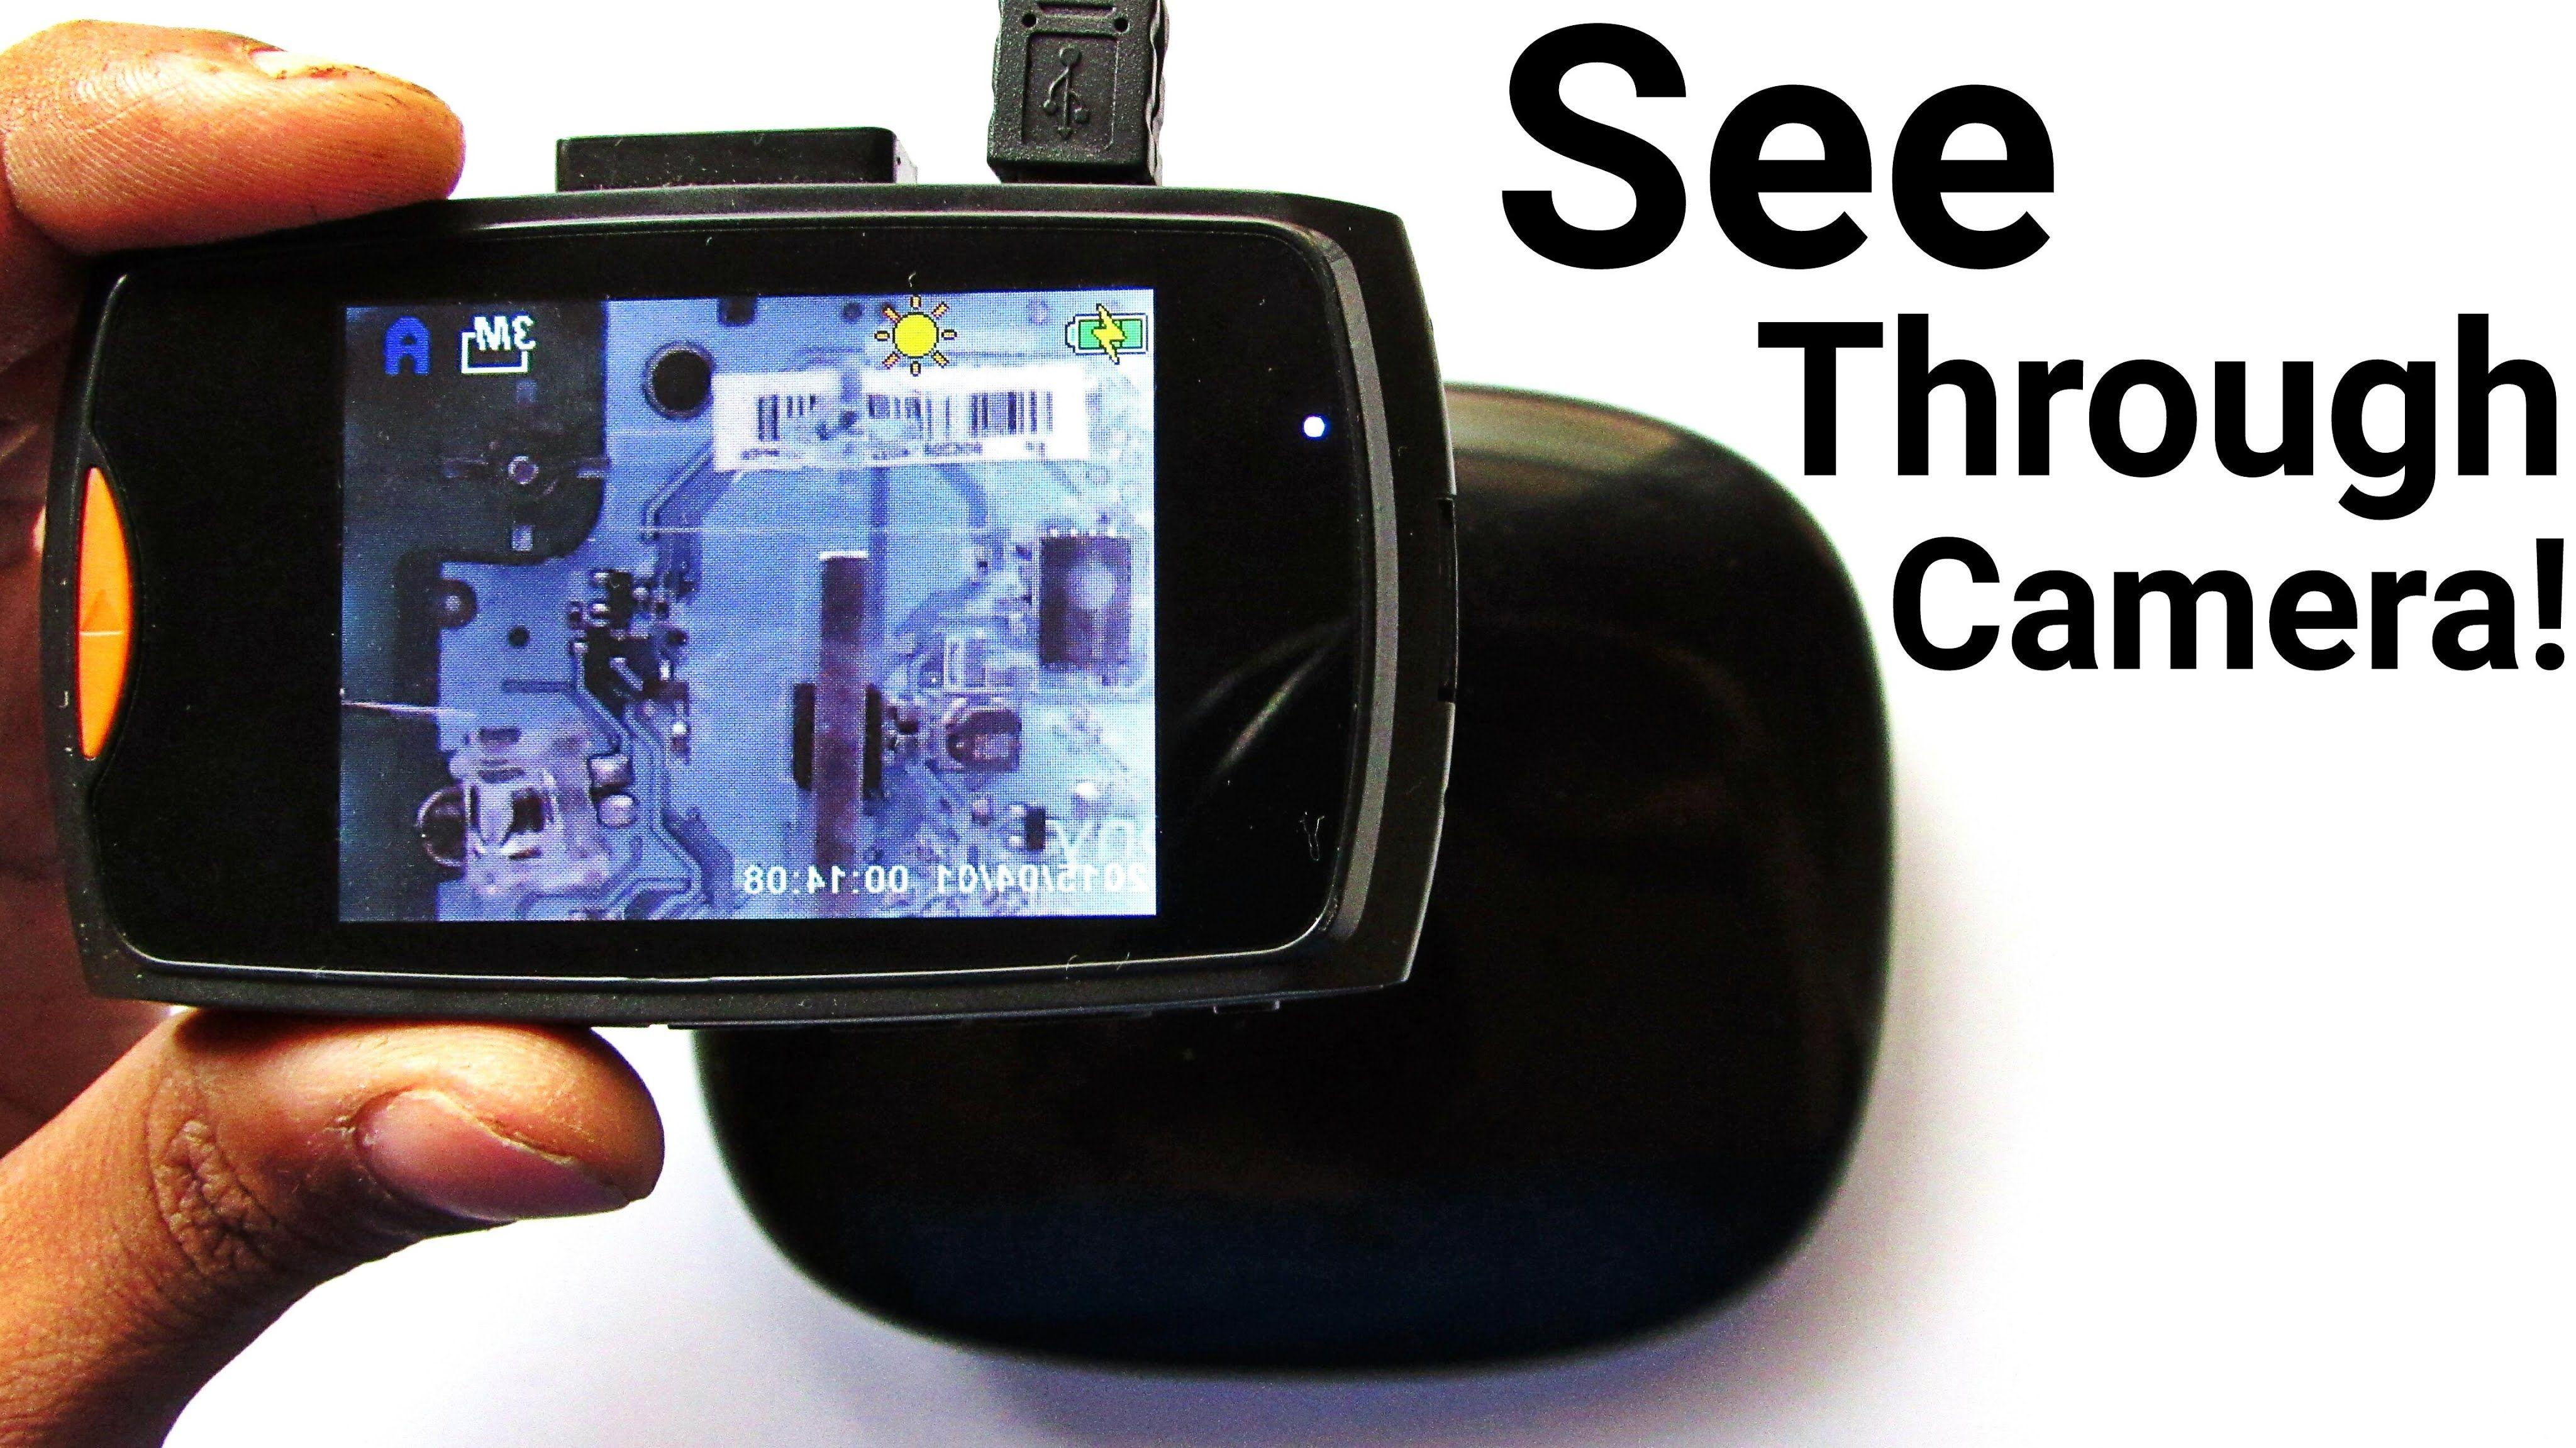 This Diy Infrared Camera Can See Through Objects New Way To Teardown Thermal Imaging Camera Thermal Imaging Covert Cameras